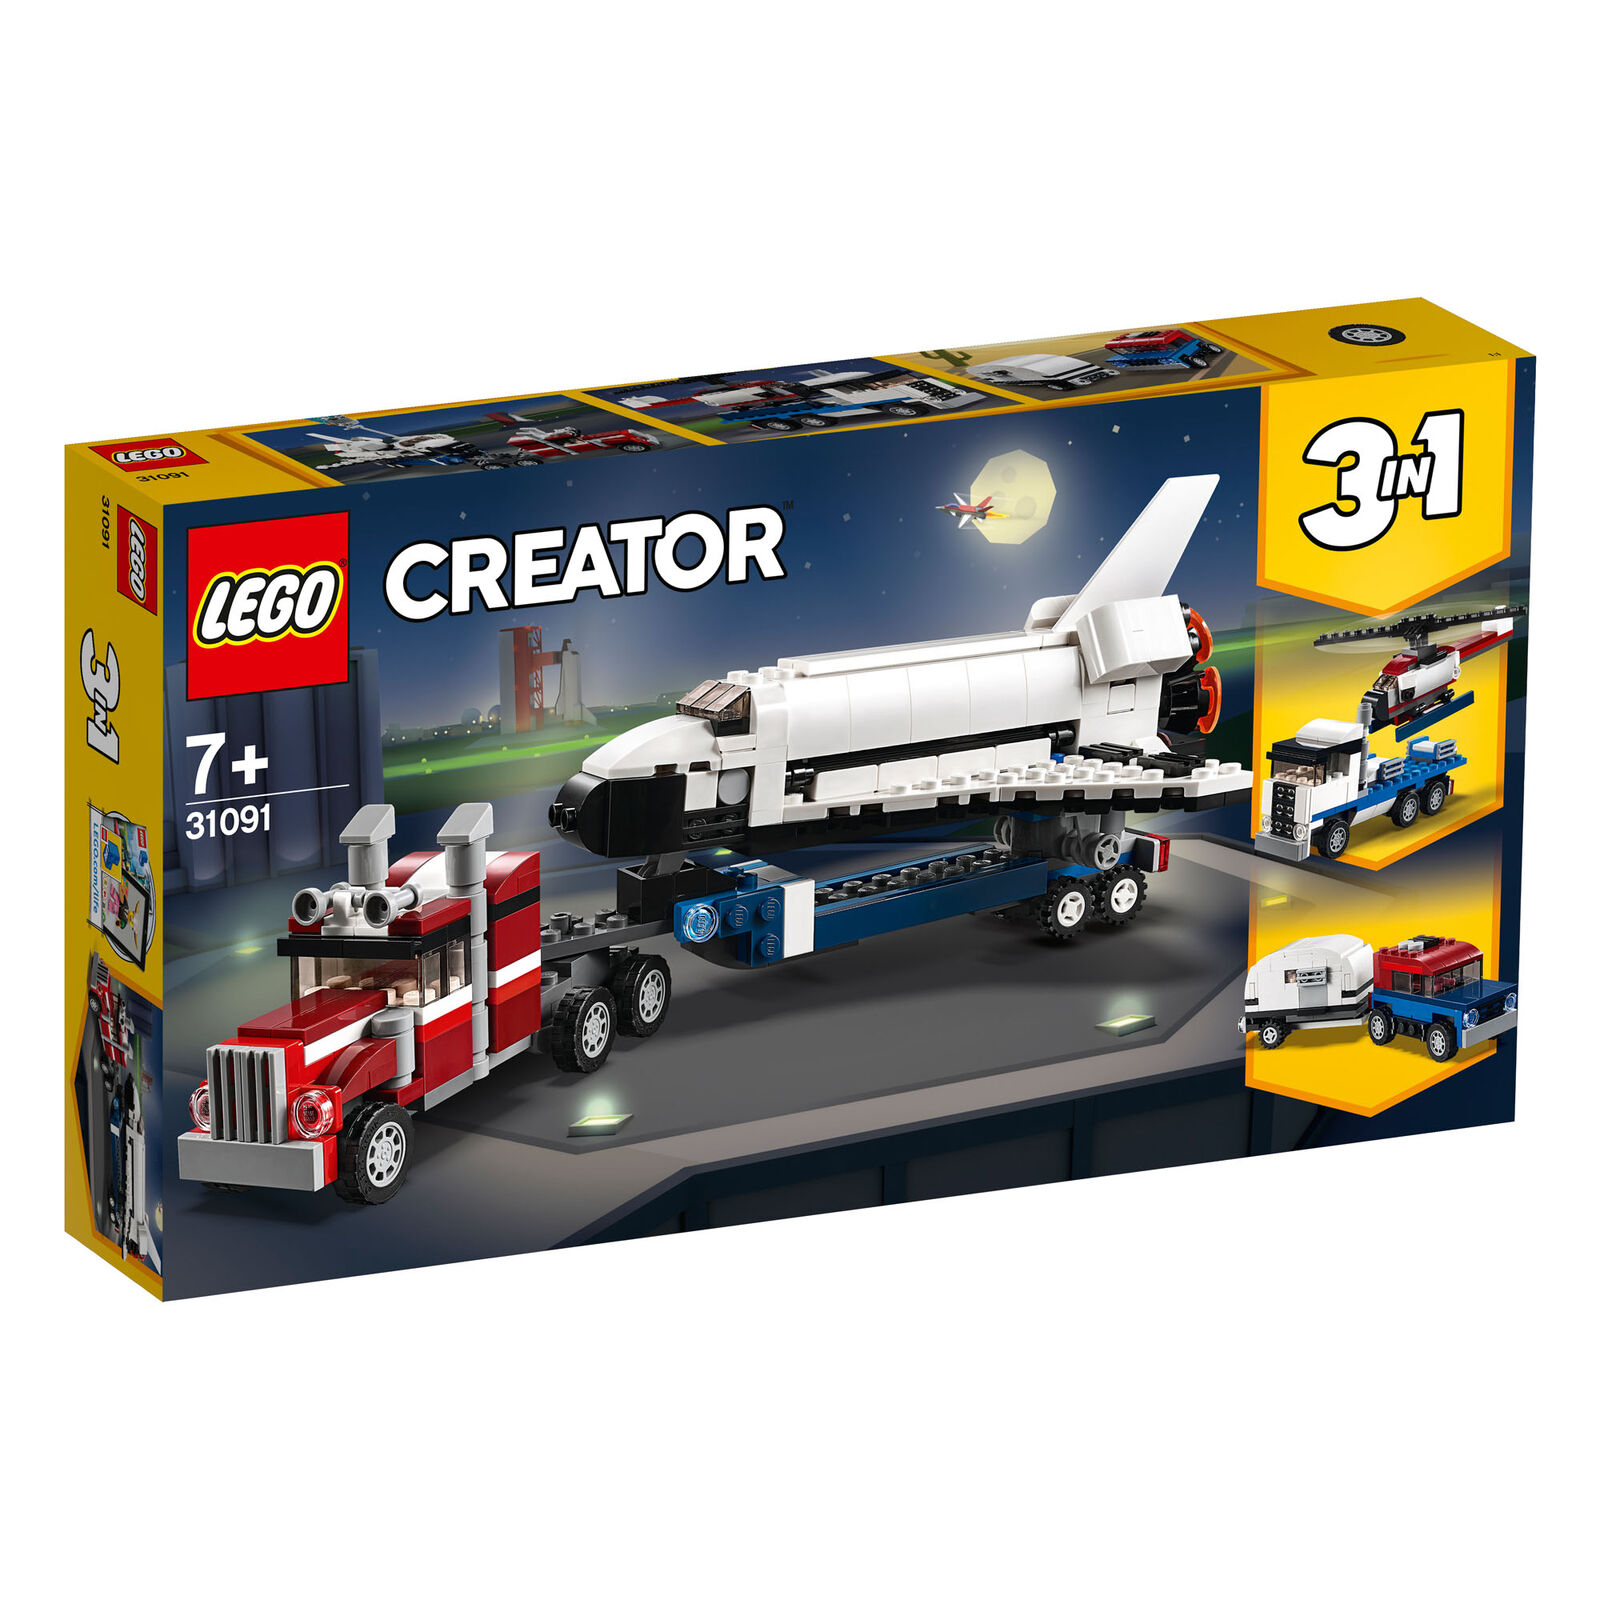 31091 LEGO Creator Shuttle Transporter 341 Pieces Age 7+ New Release for 2019